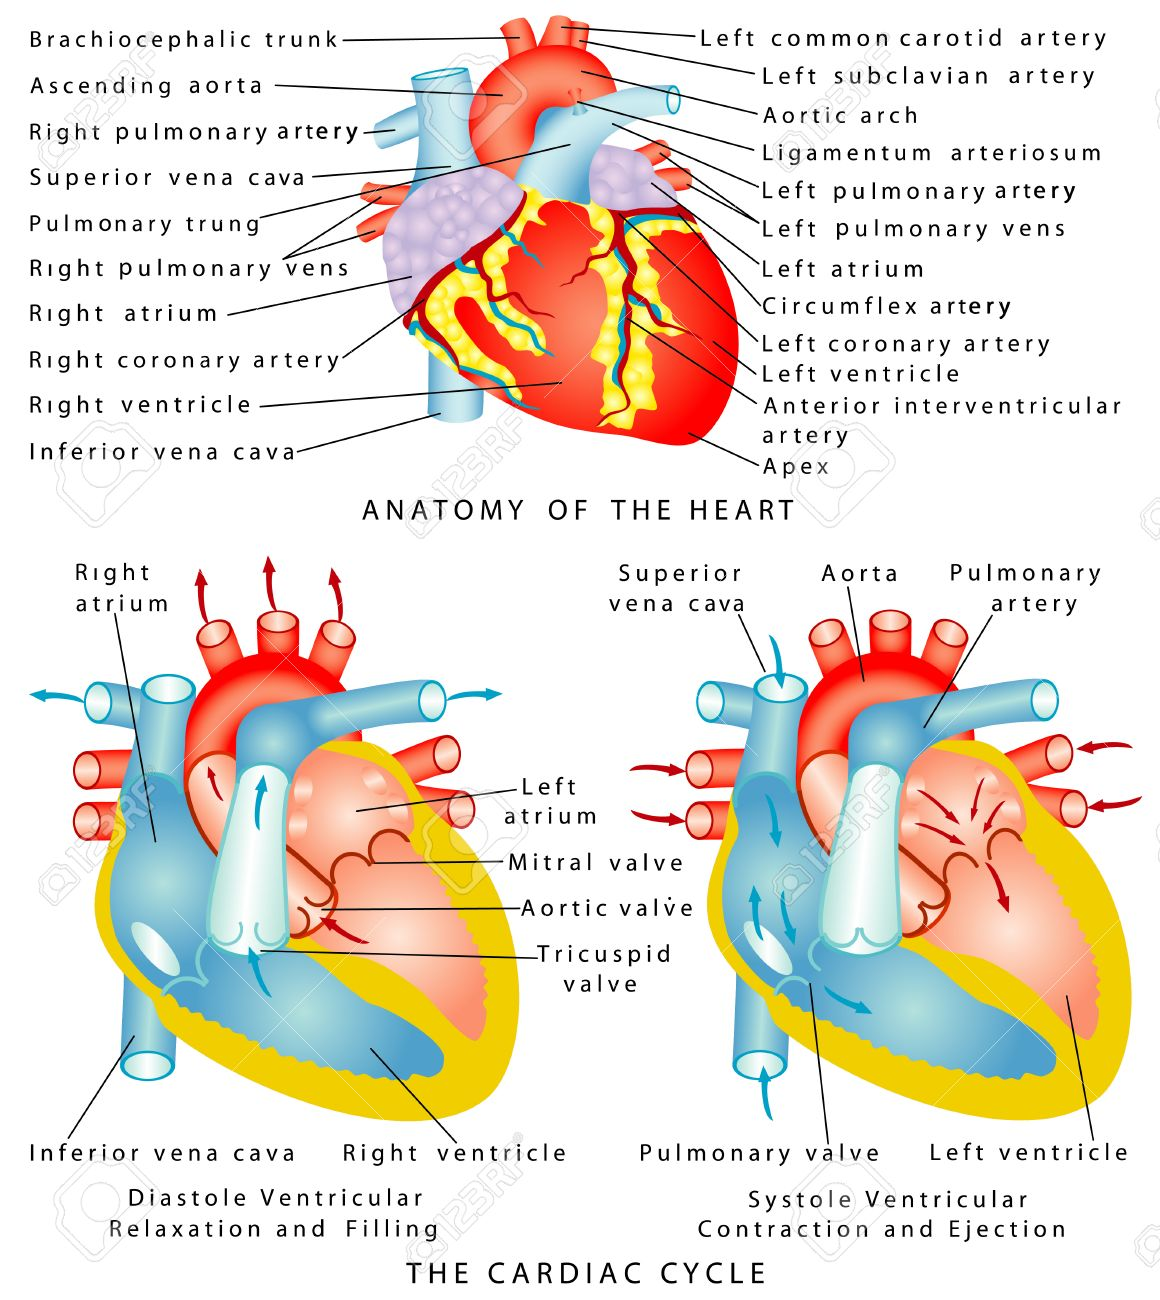 Ventricular Contraction And Relaxation Ventricular Contraction